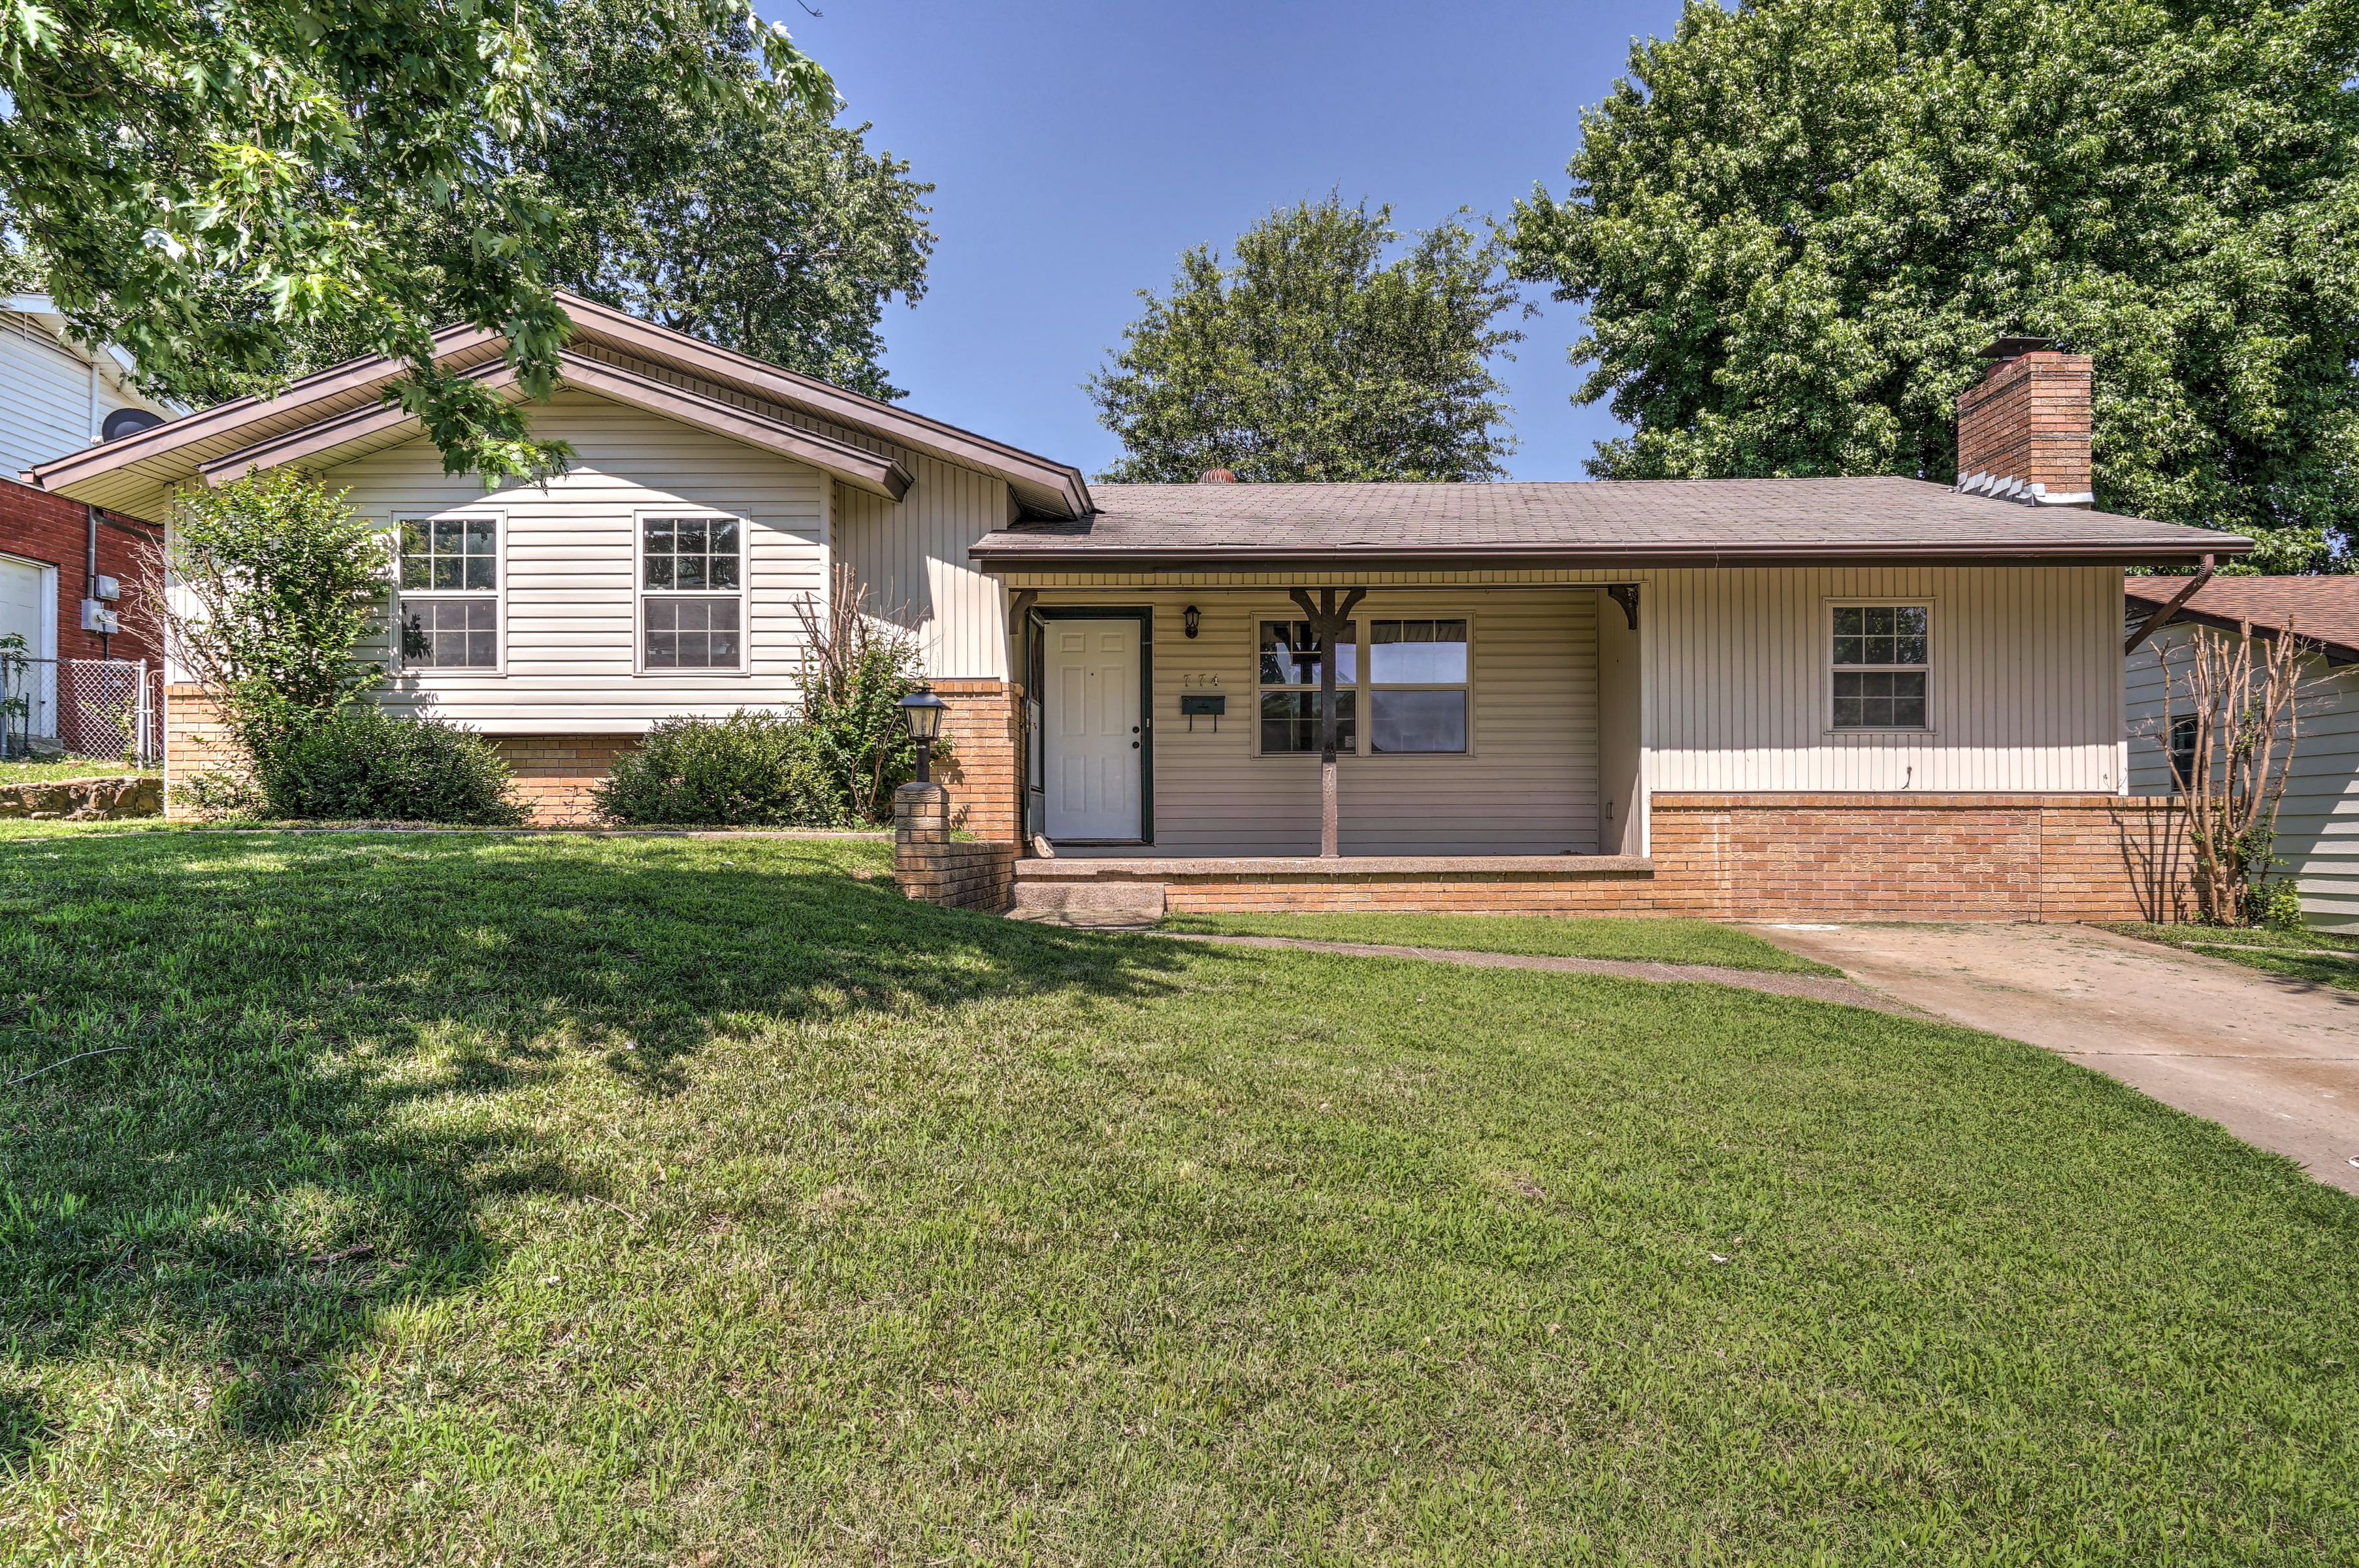 774 N Moccasin Street Property Photo